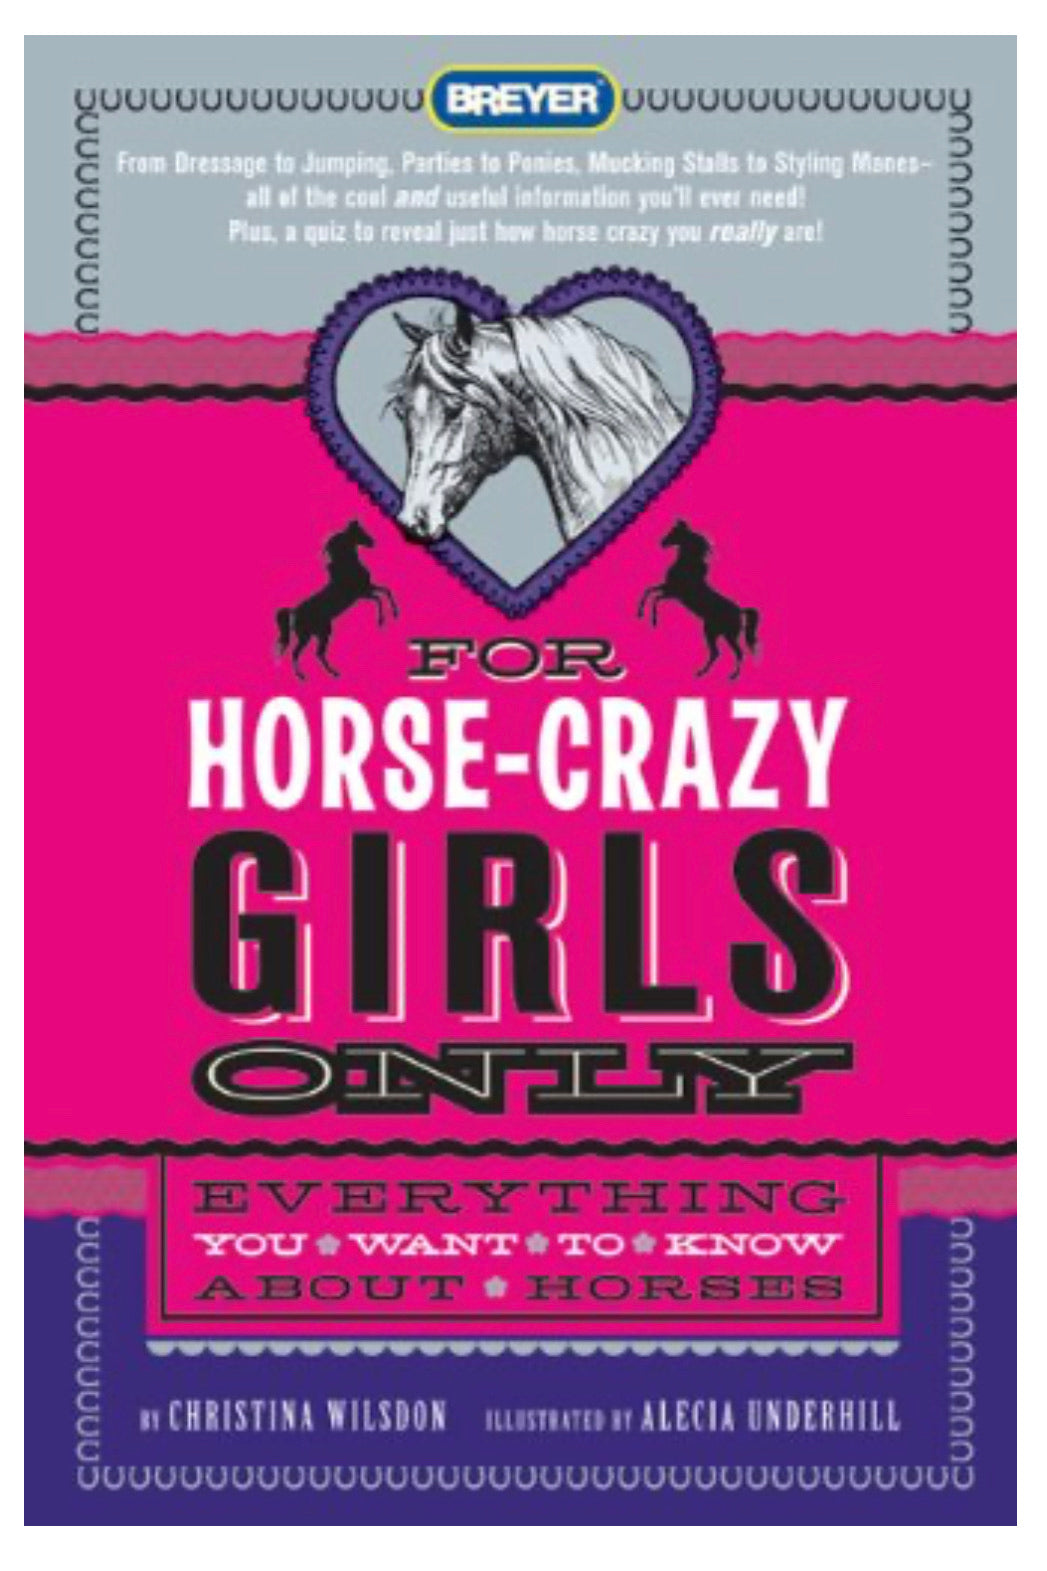 For Horse Crazy Girls Only from Breyer